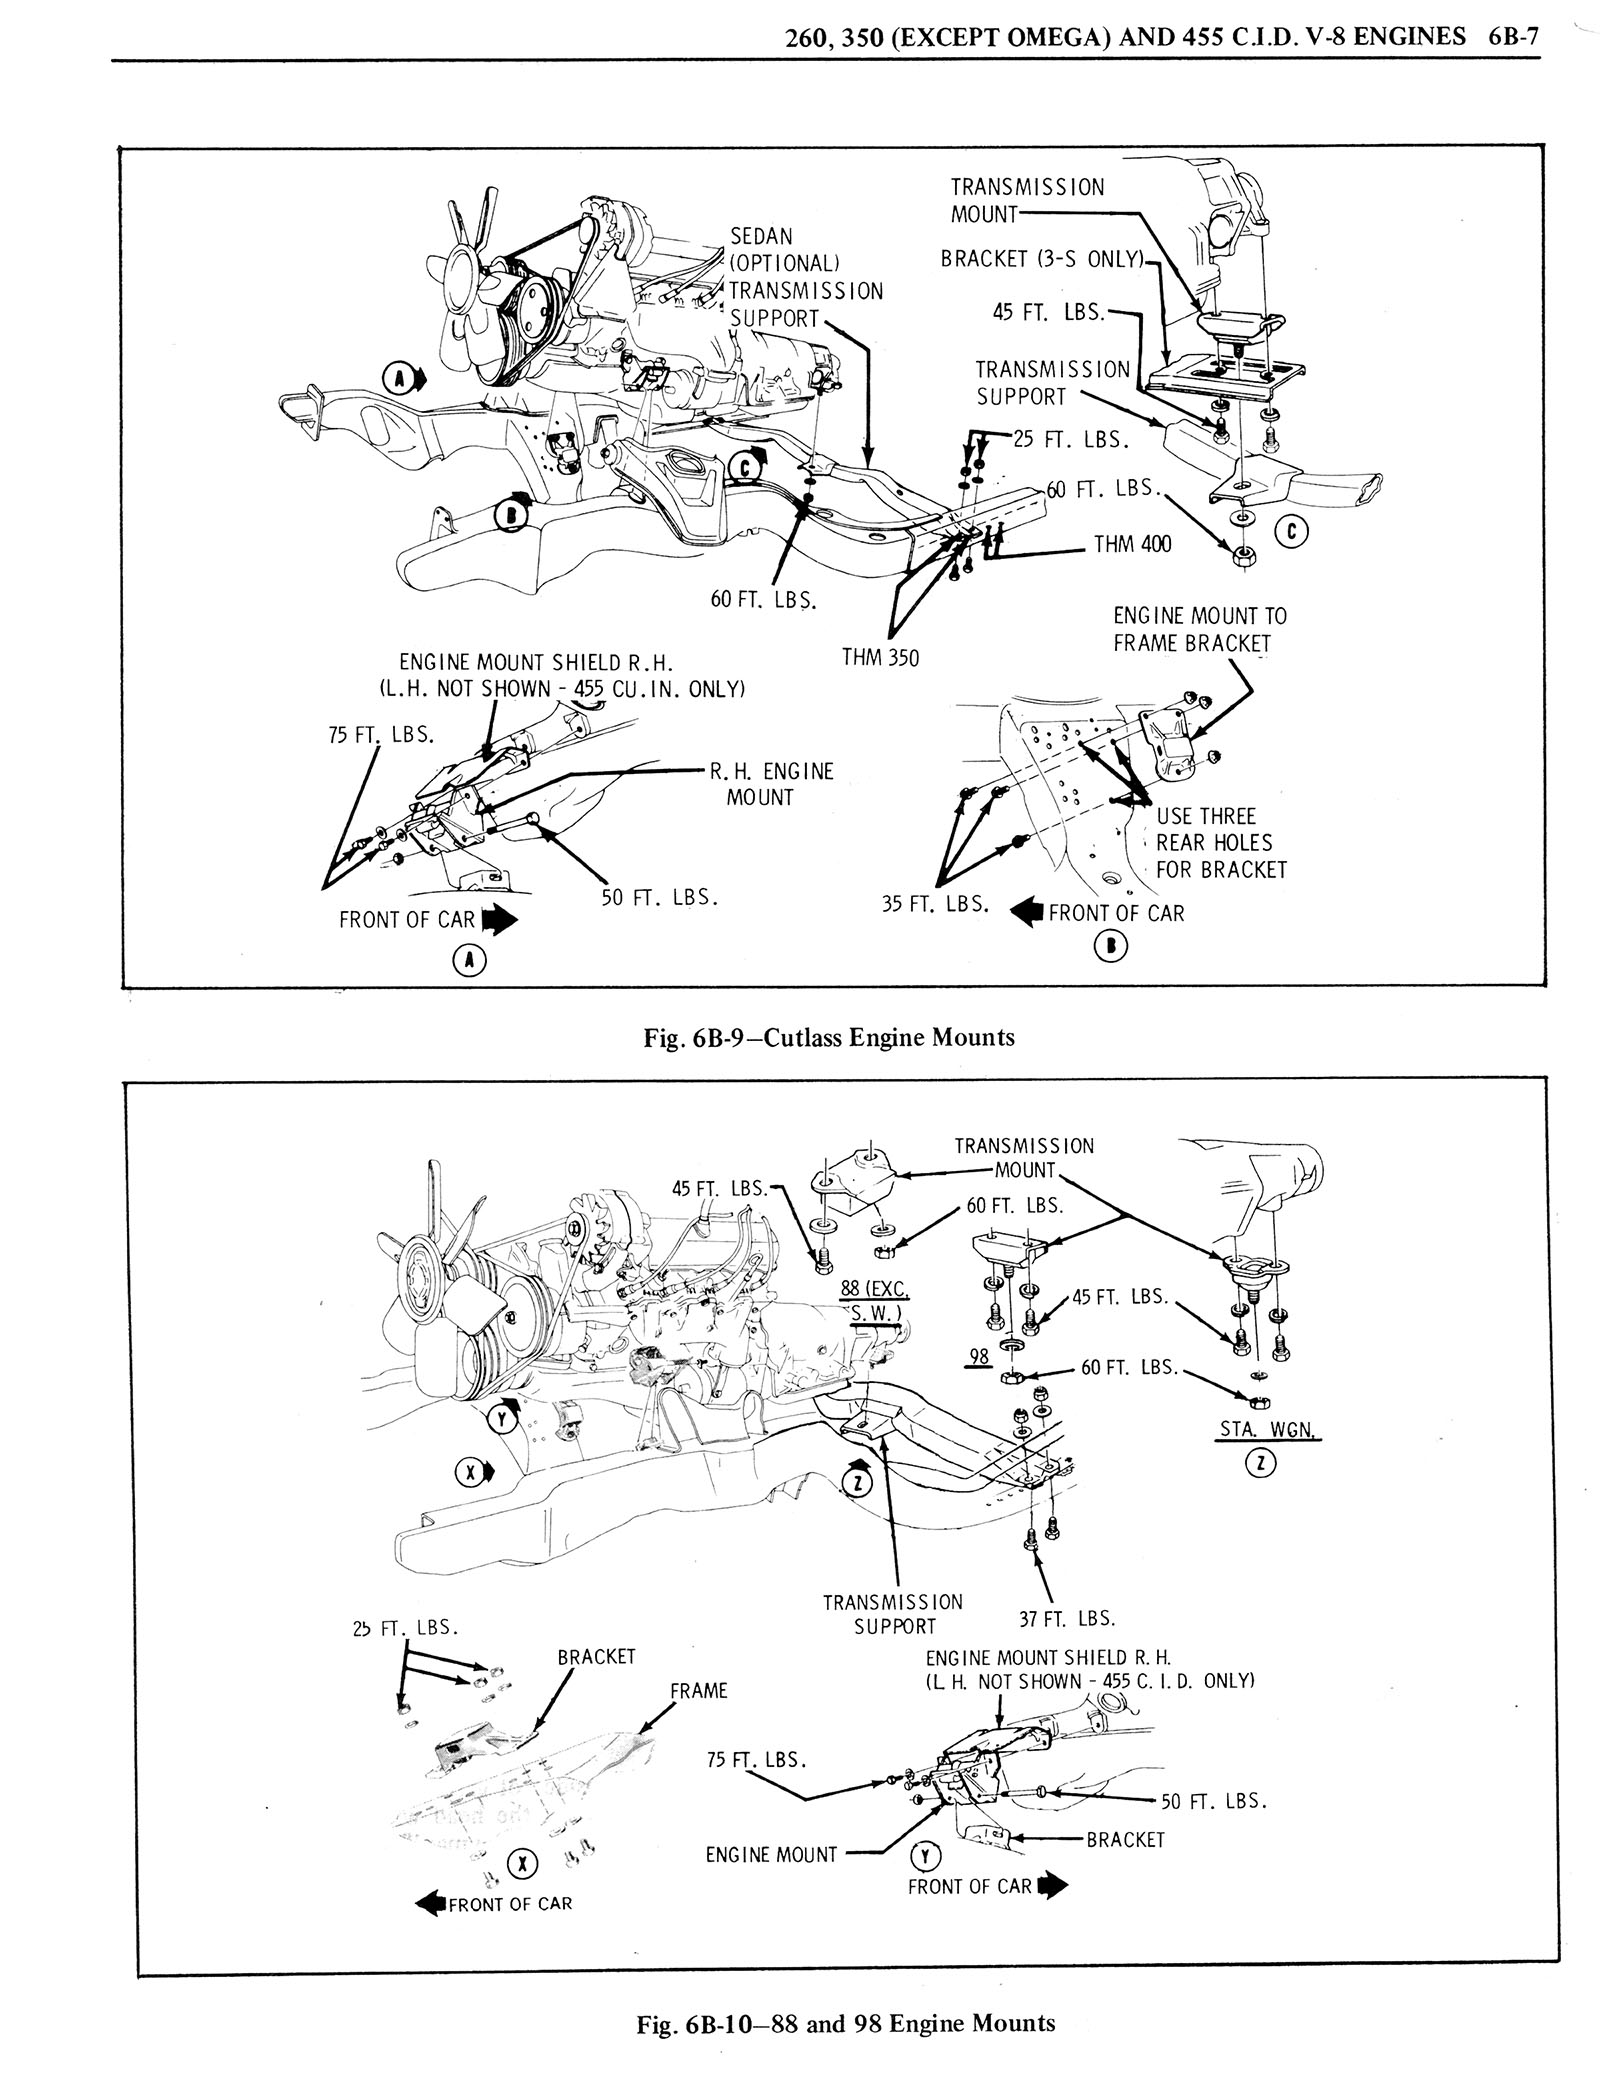 1976 Oldsmobile Service Manual page 426 of 1390